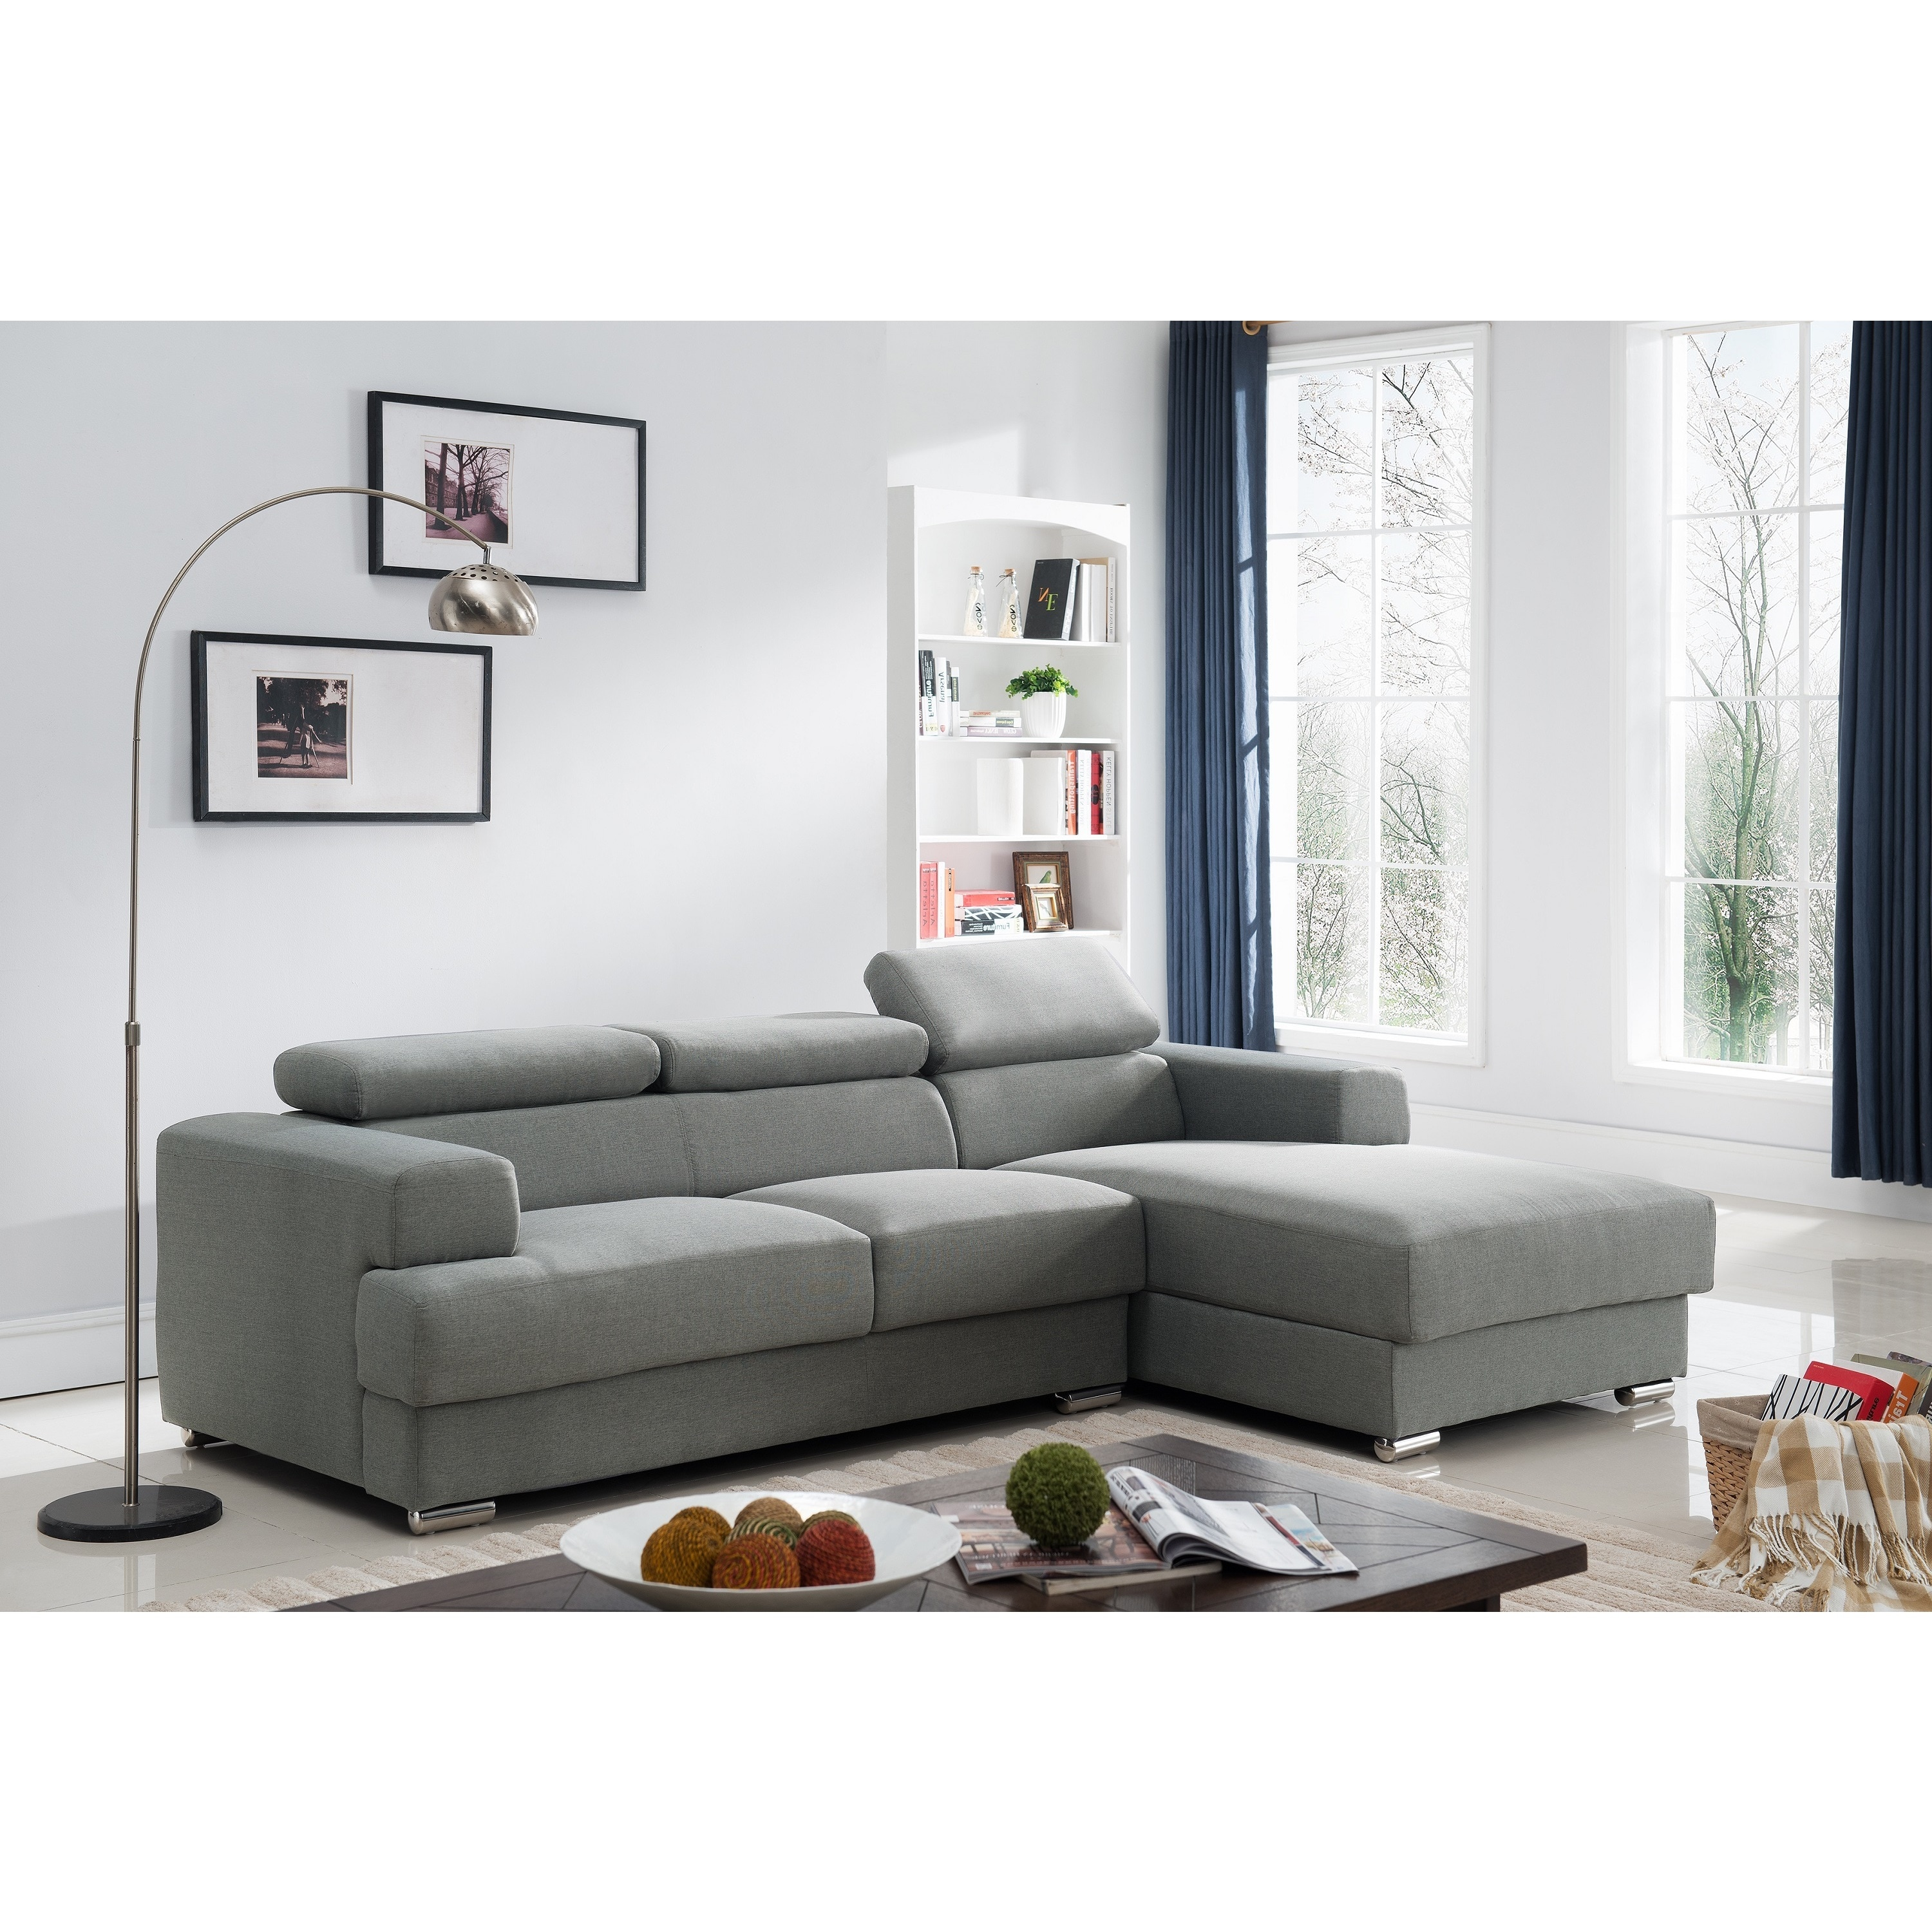 modern furniture sectional exclusive contemporary fama arianne modular cado sofas by sofa connecticut at spain